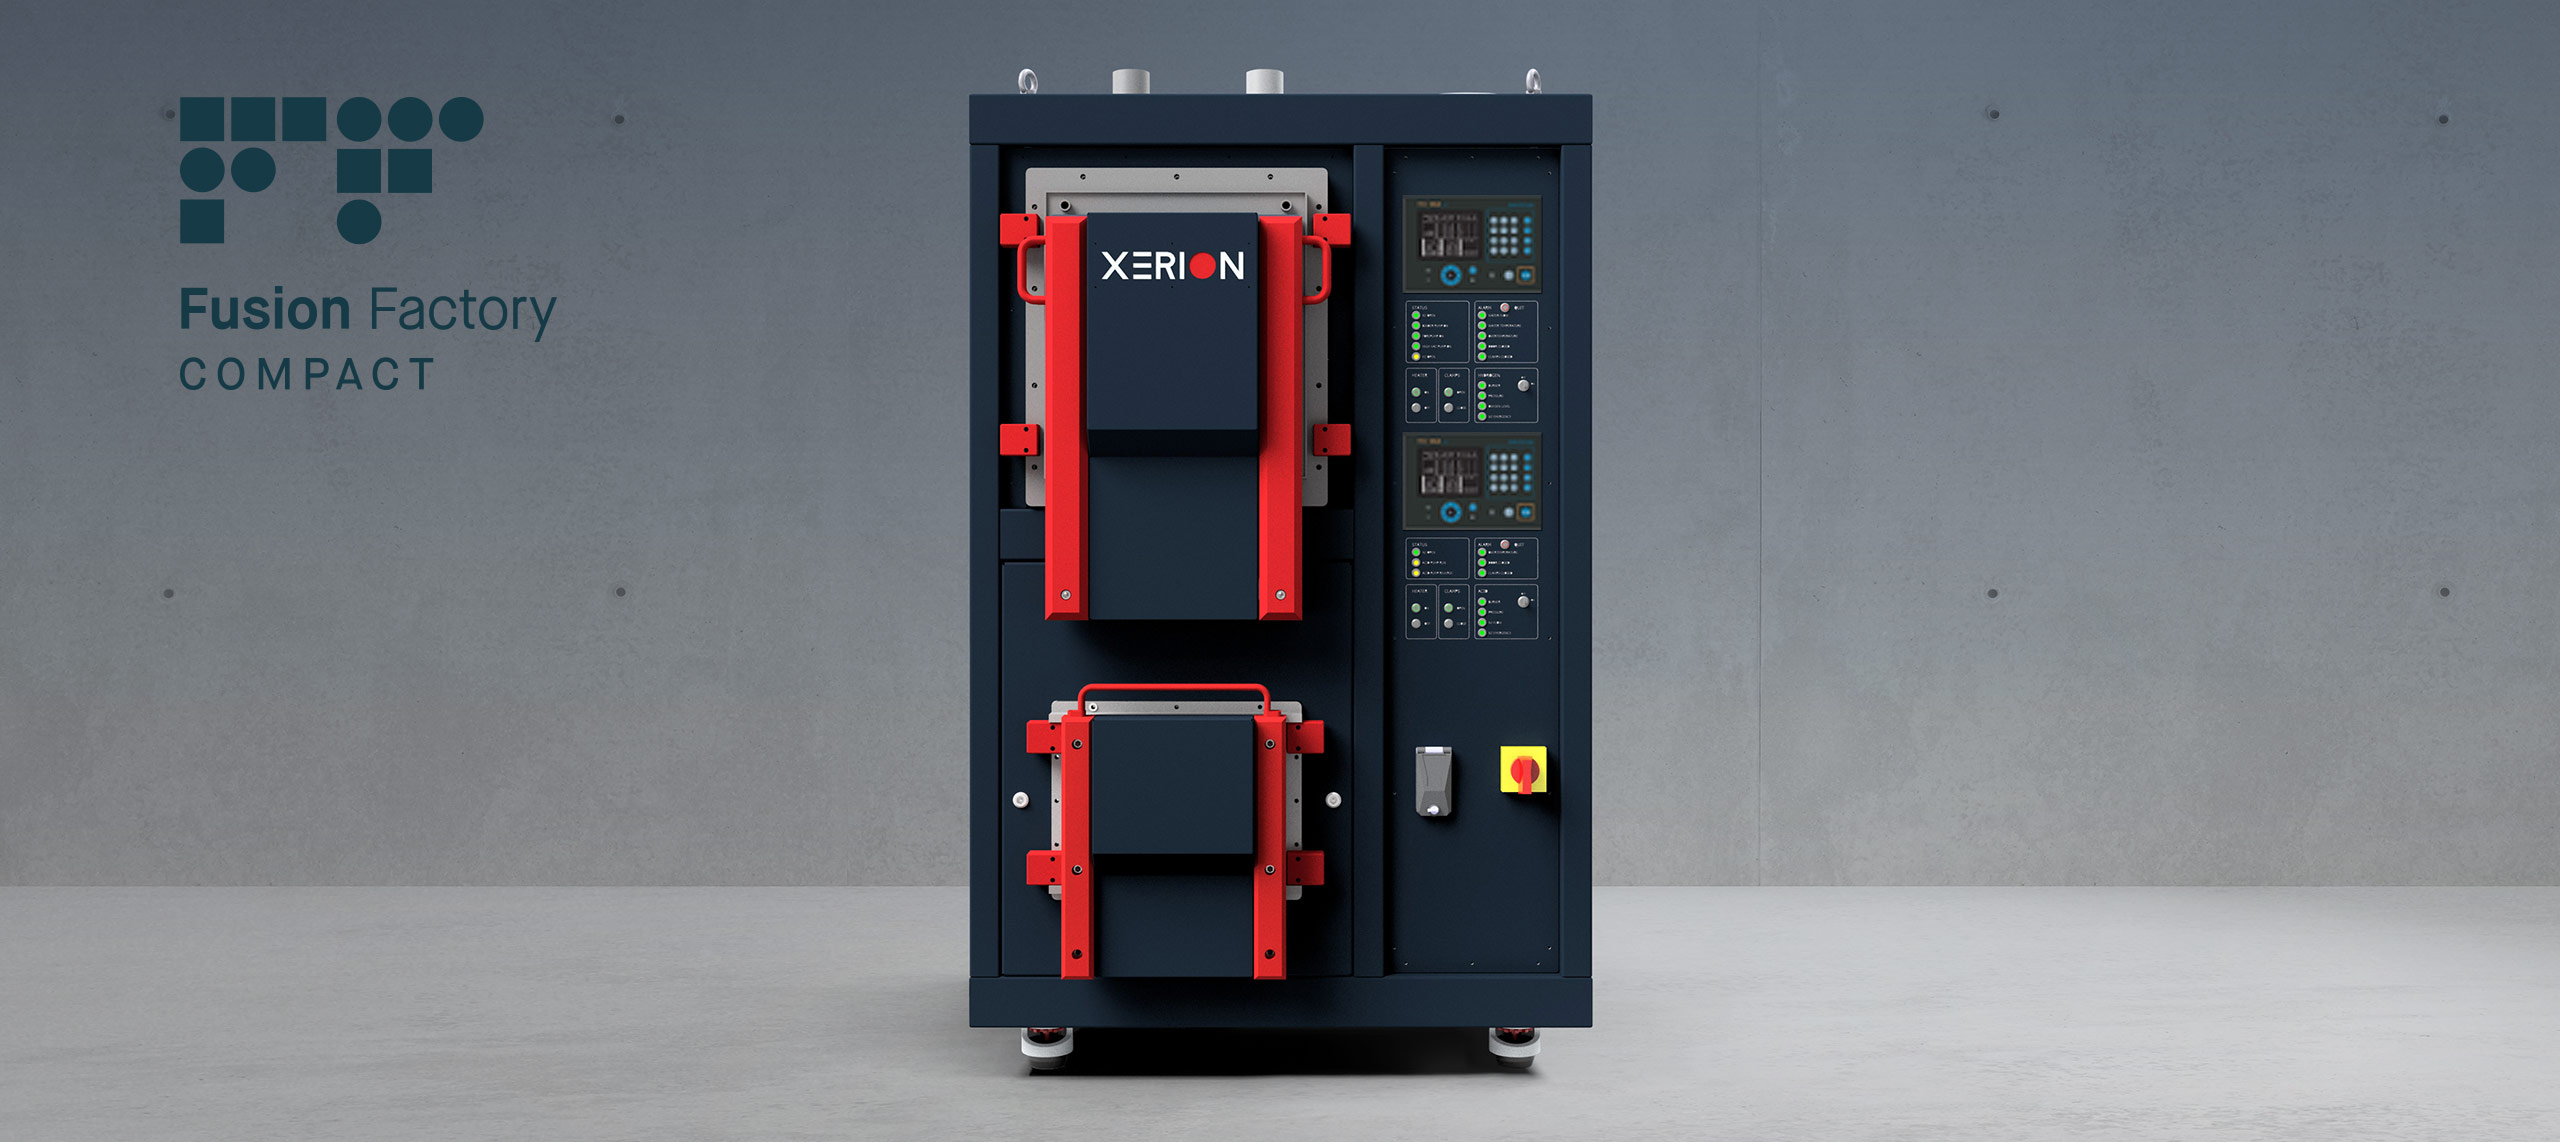 XERION Additive Manufacturing Fusion Factory COMPACT